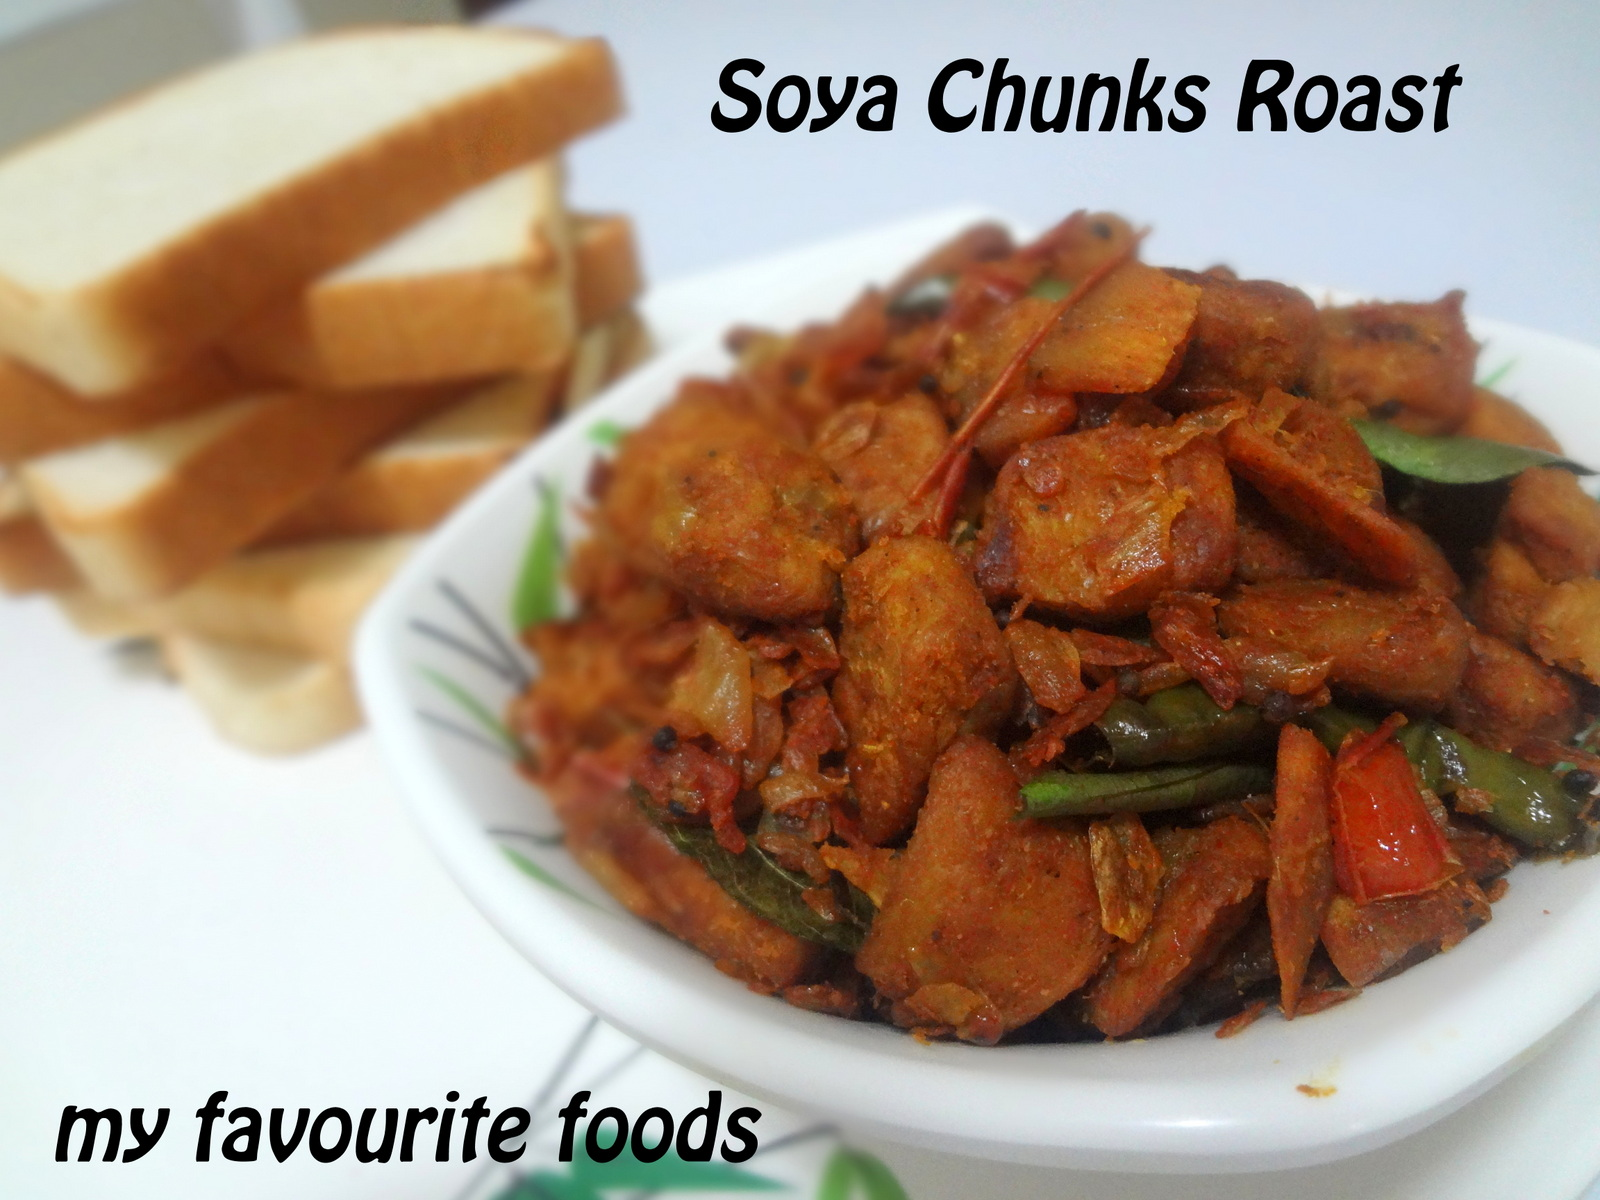 Soya chunks roast